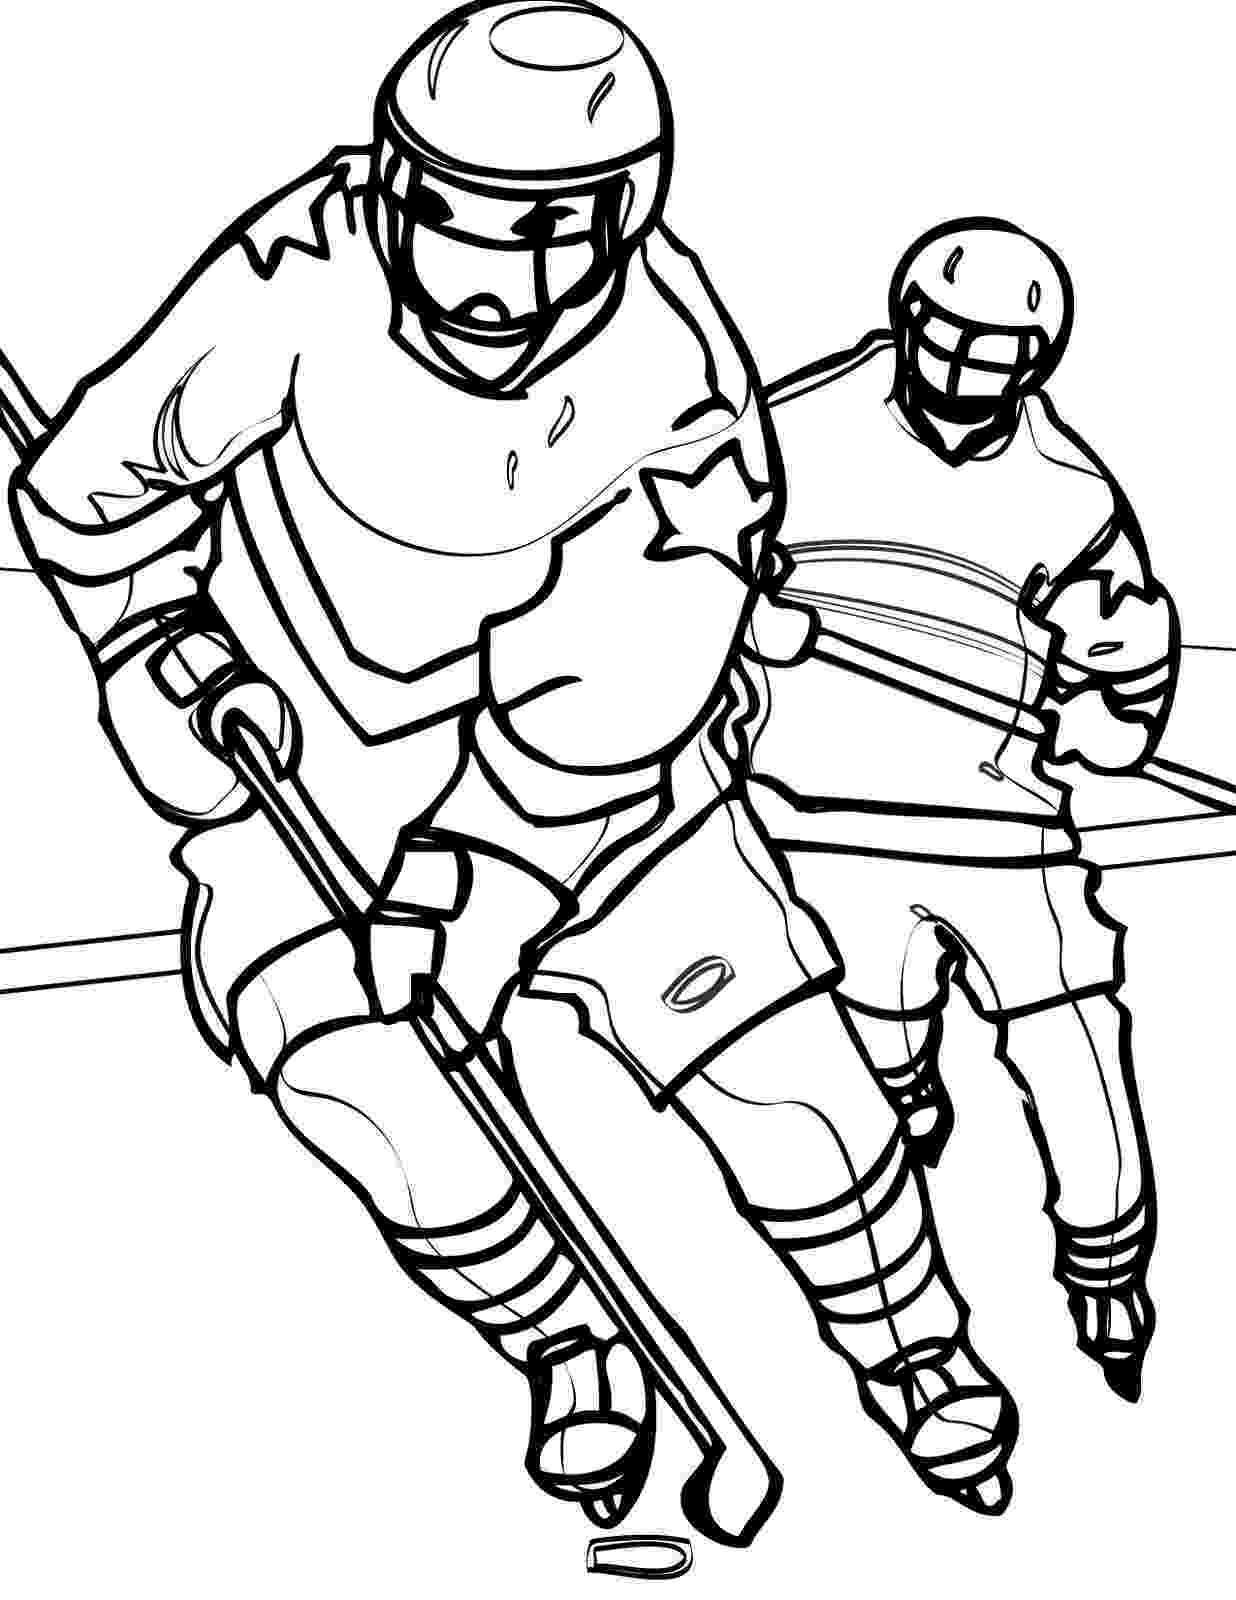 printable hockey coloring pages hockey coloring pages birthday printable pages printable coloring hockey